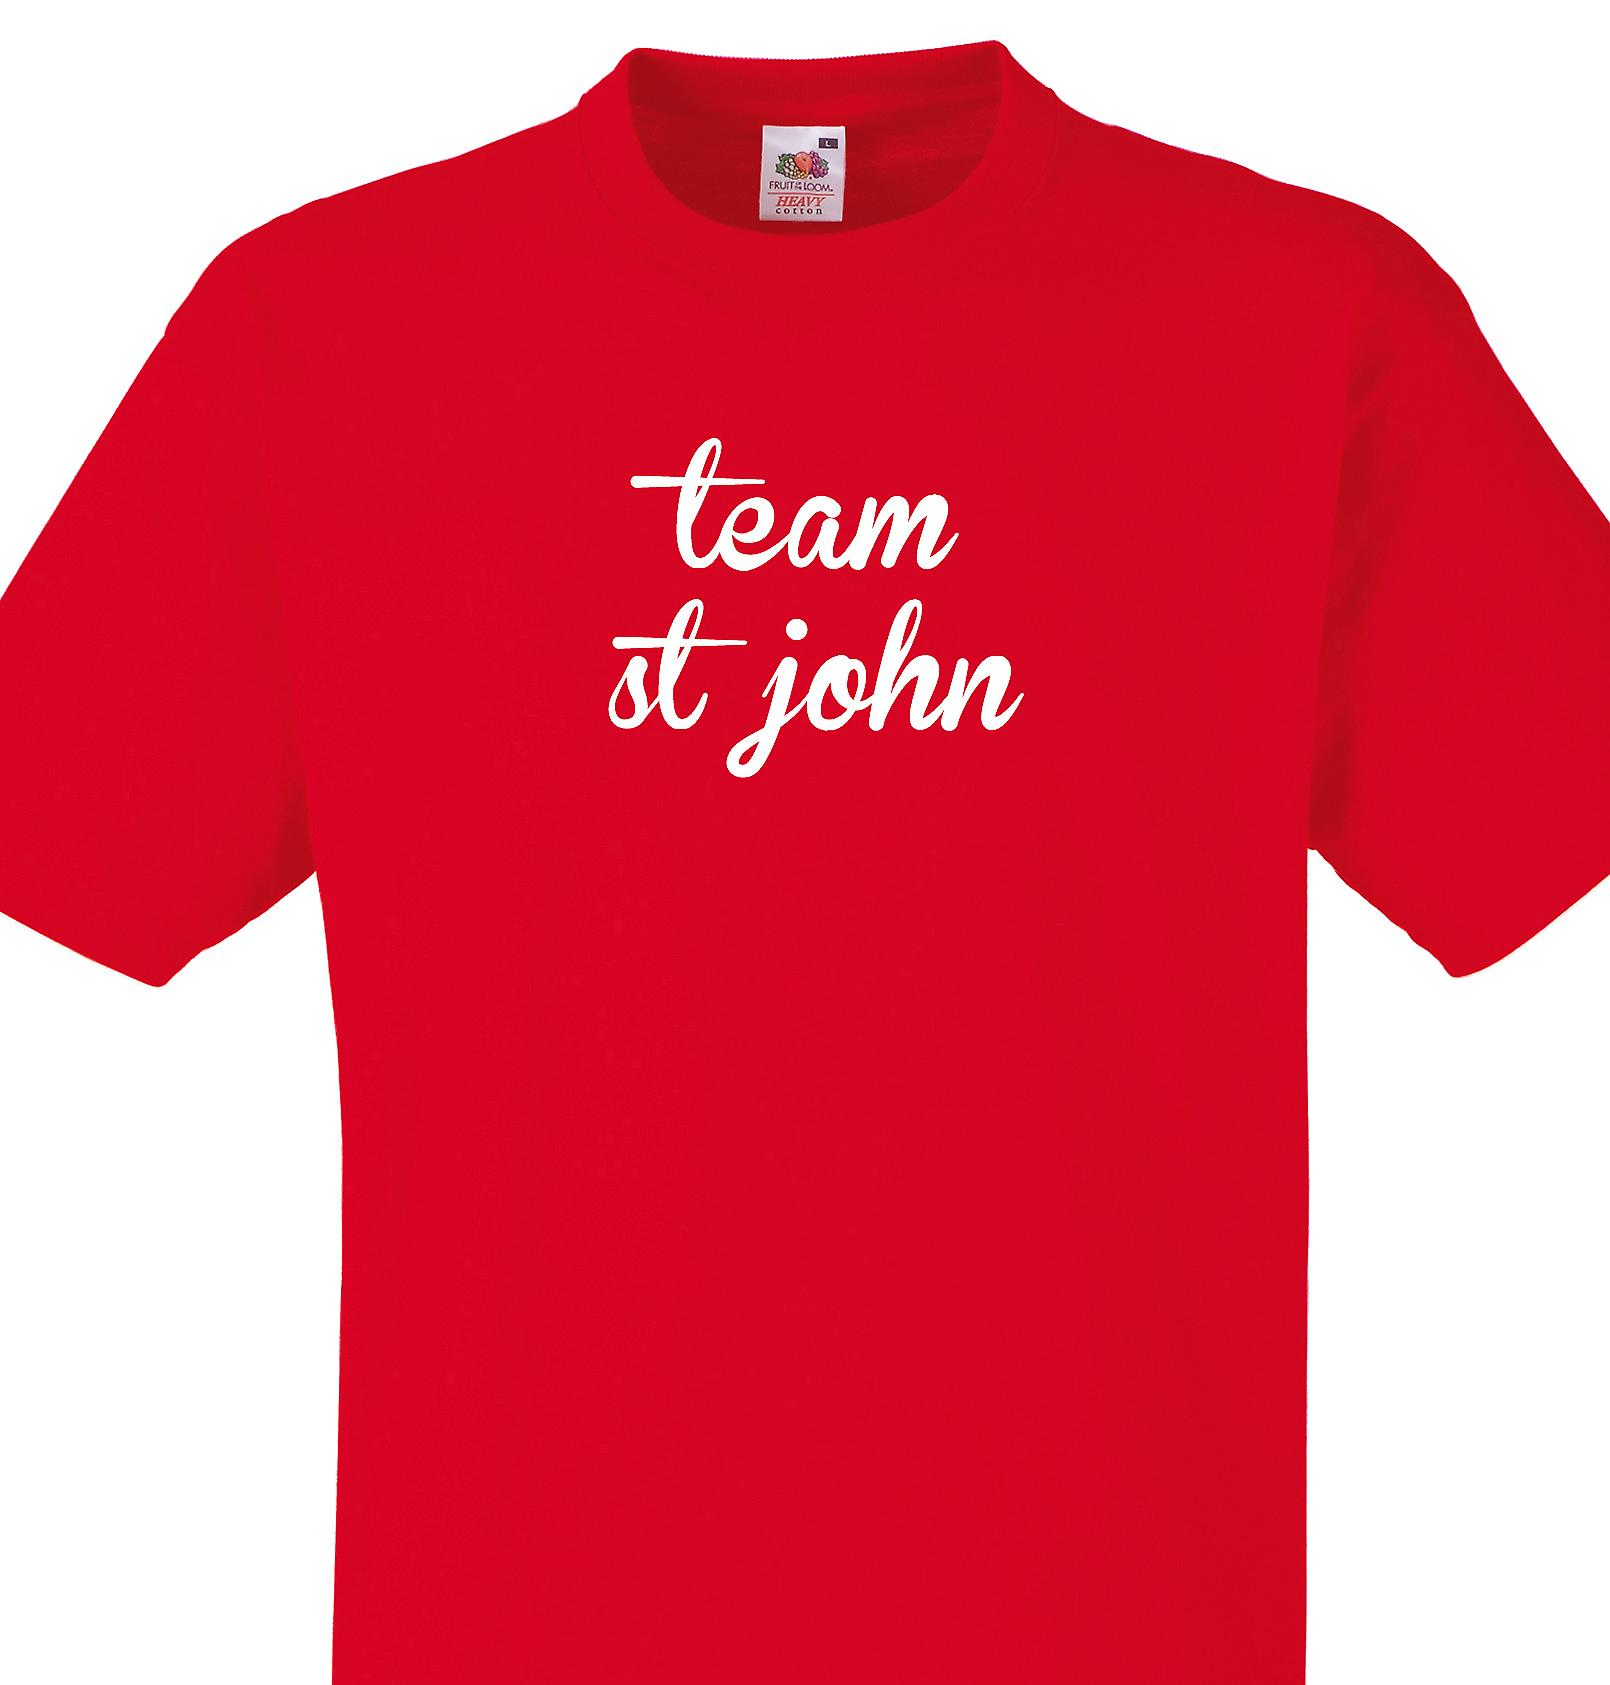 Team St john Red T shirt